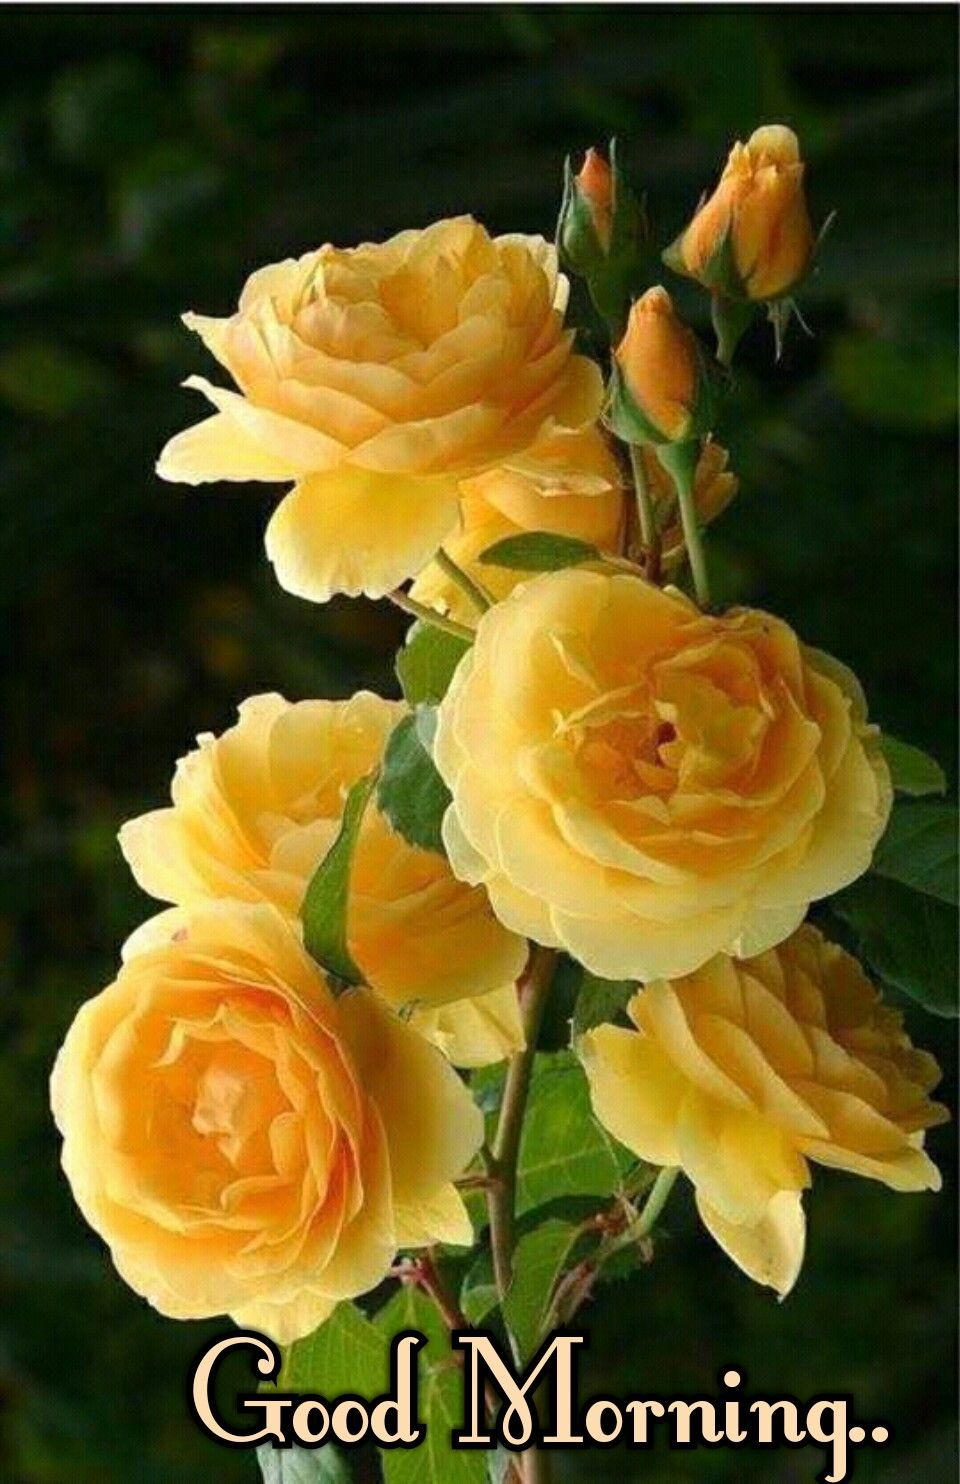 Beautiful yellow rose gardens - Yellow Roses Are One My Favorite Flower They Make You Feel Happy With Their Smiling Color Gardening Aisle